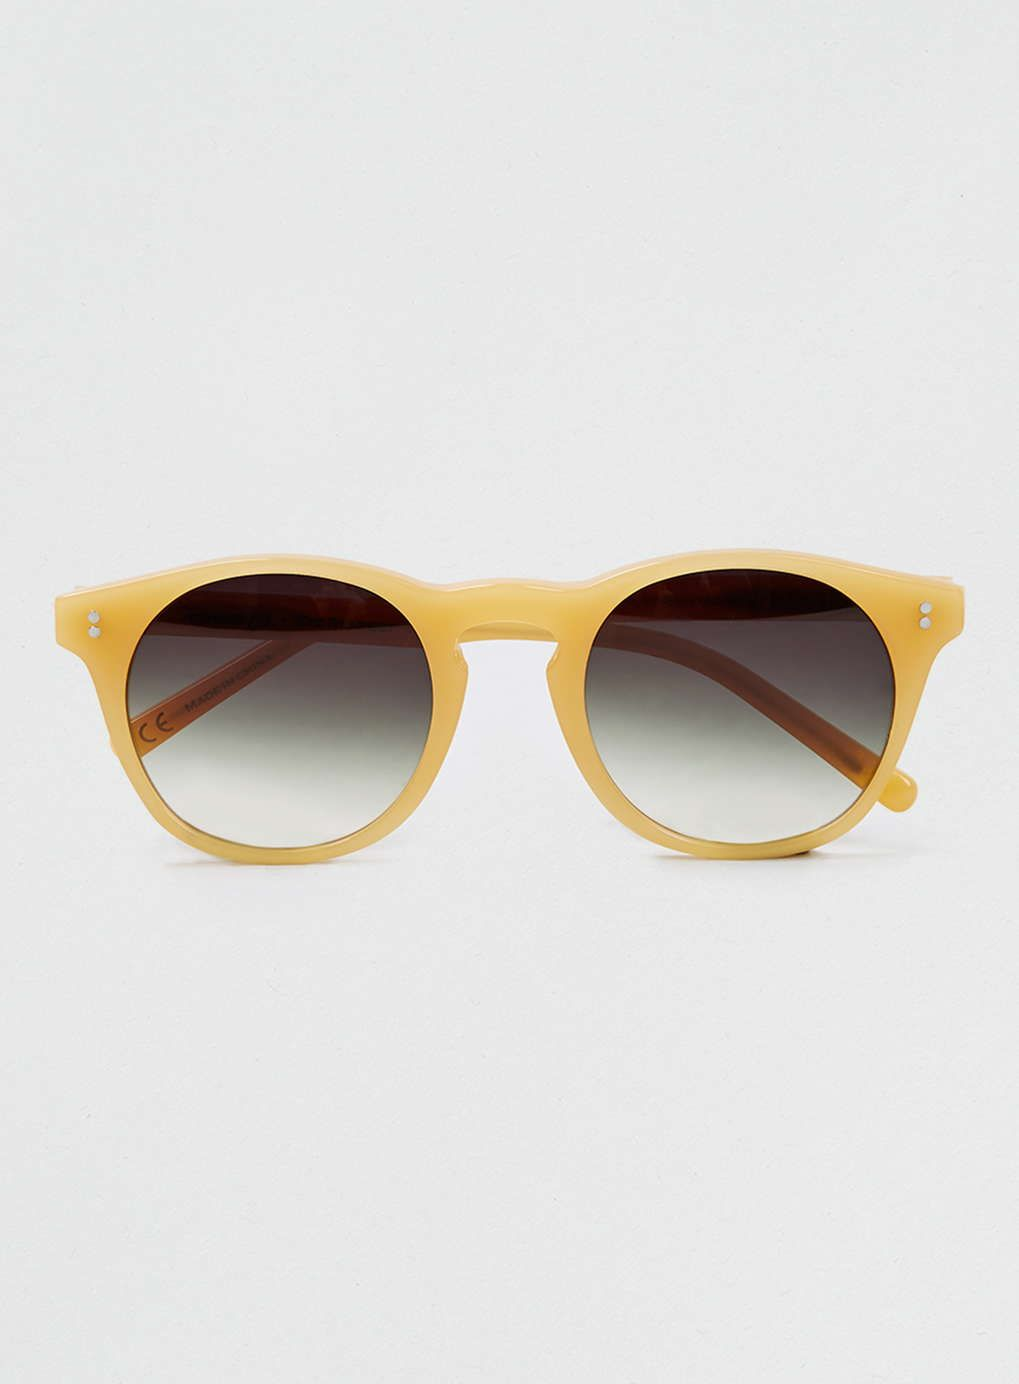 Eye Respect for Topman Sunglasses Collection